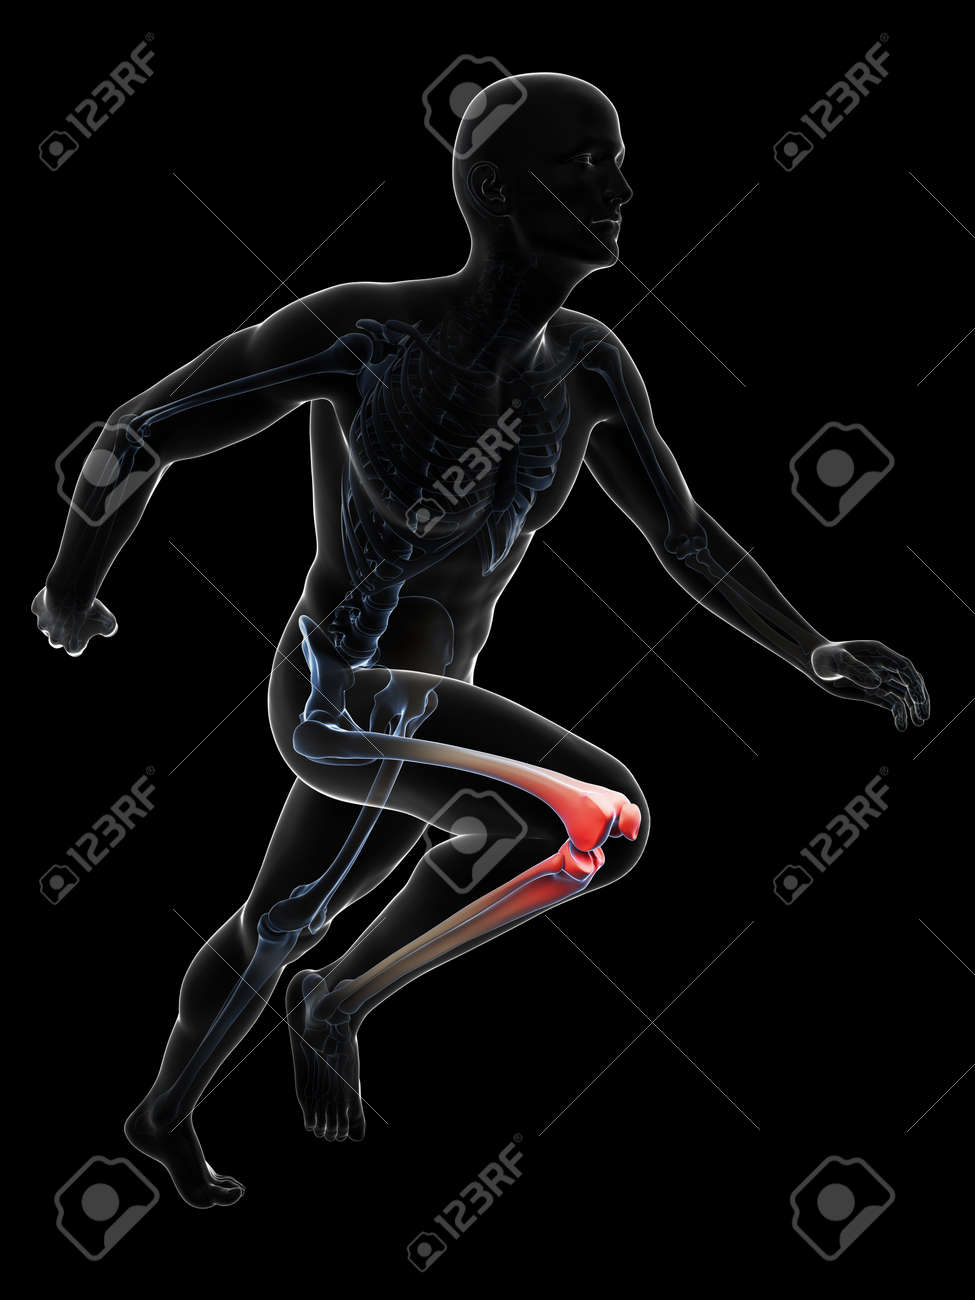 3d rendered illustration - painful runner joints Stock Photo - 18070614